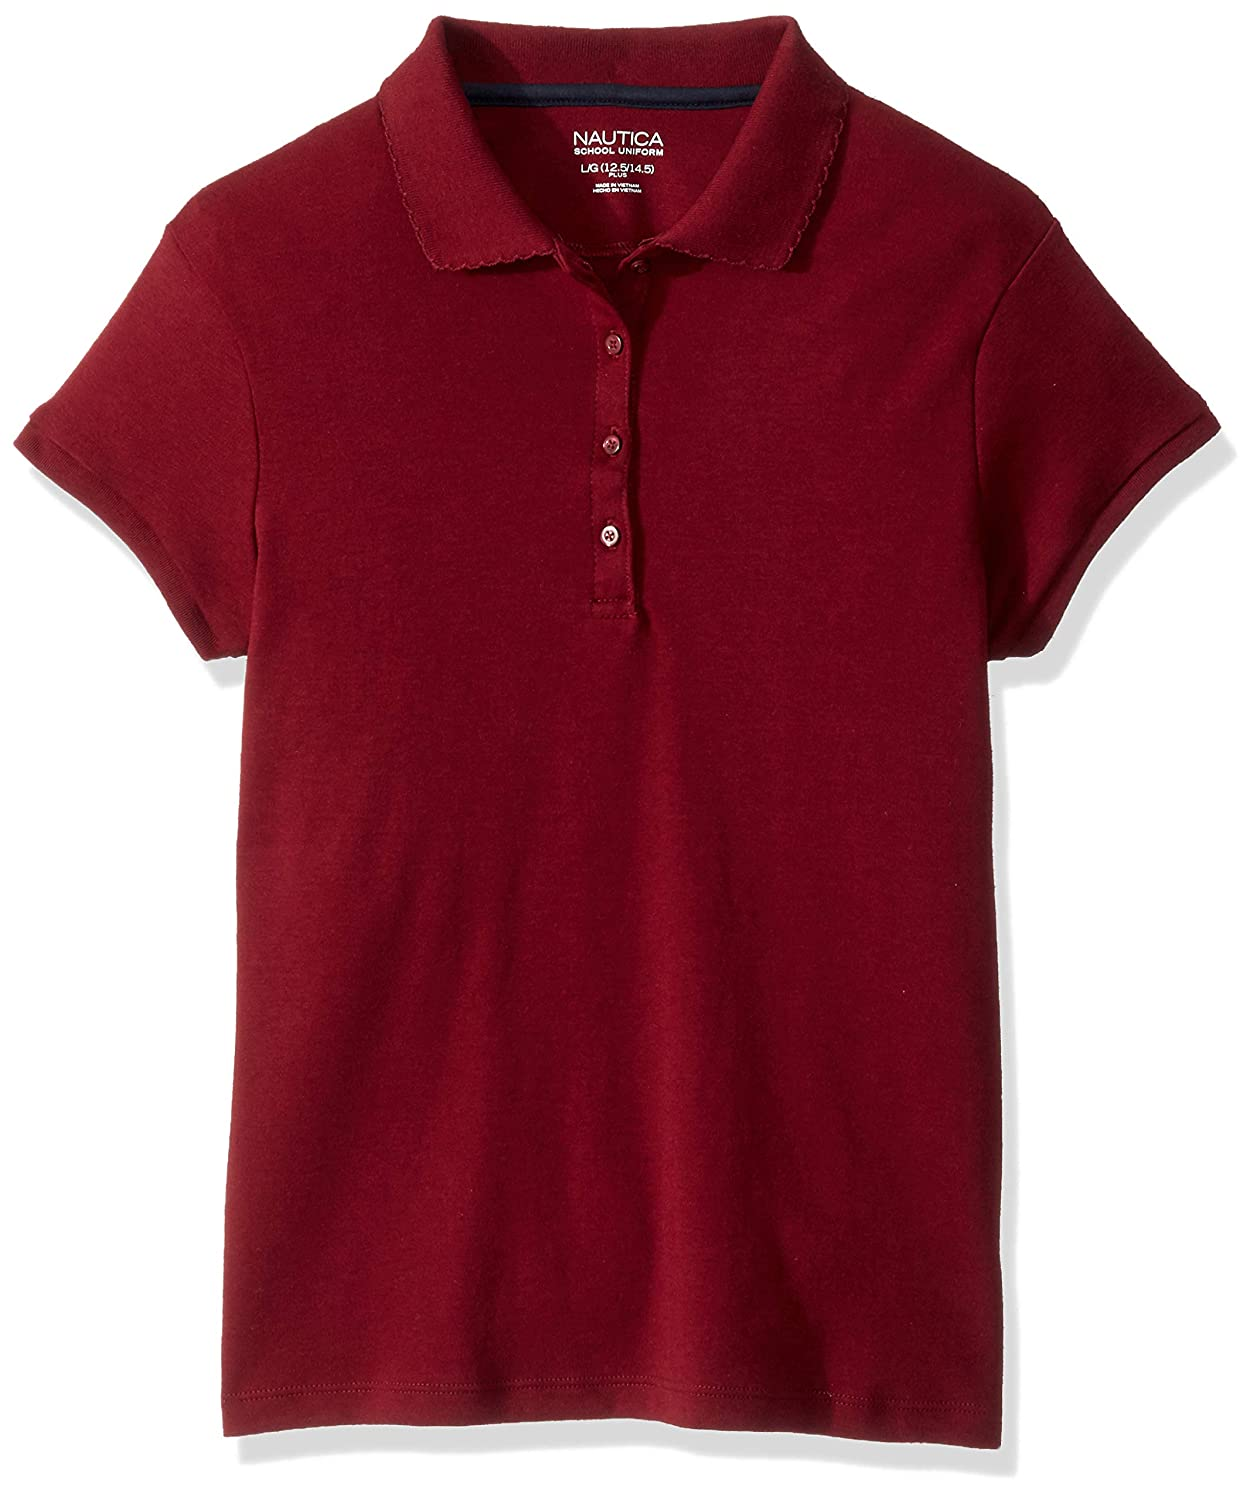 Nautica Girls Short Sleeve Polo, Burgundy, M(8.5/10.5): Amazon.es ...